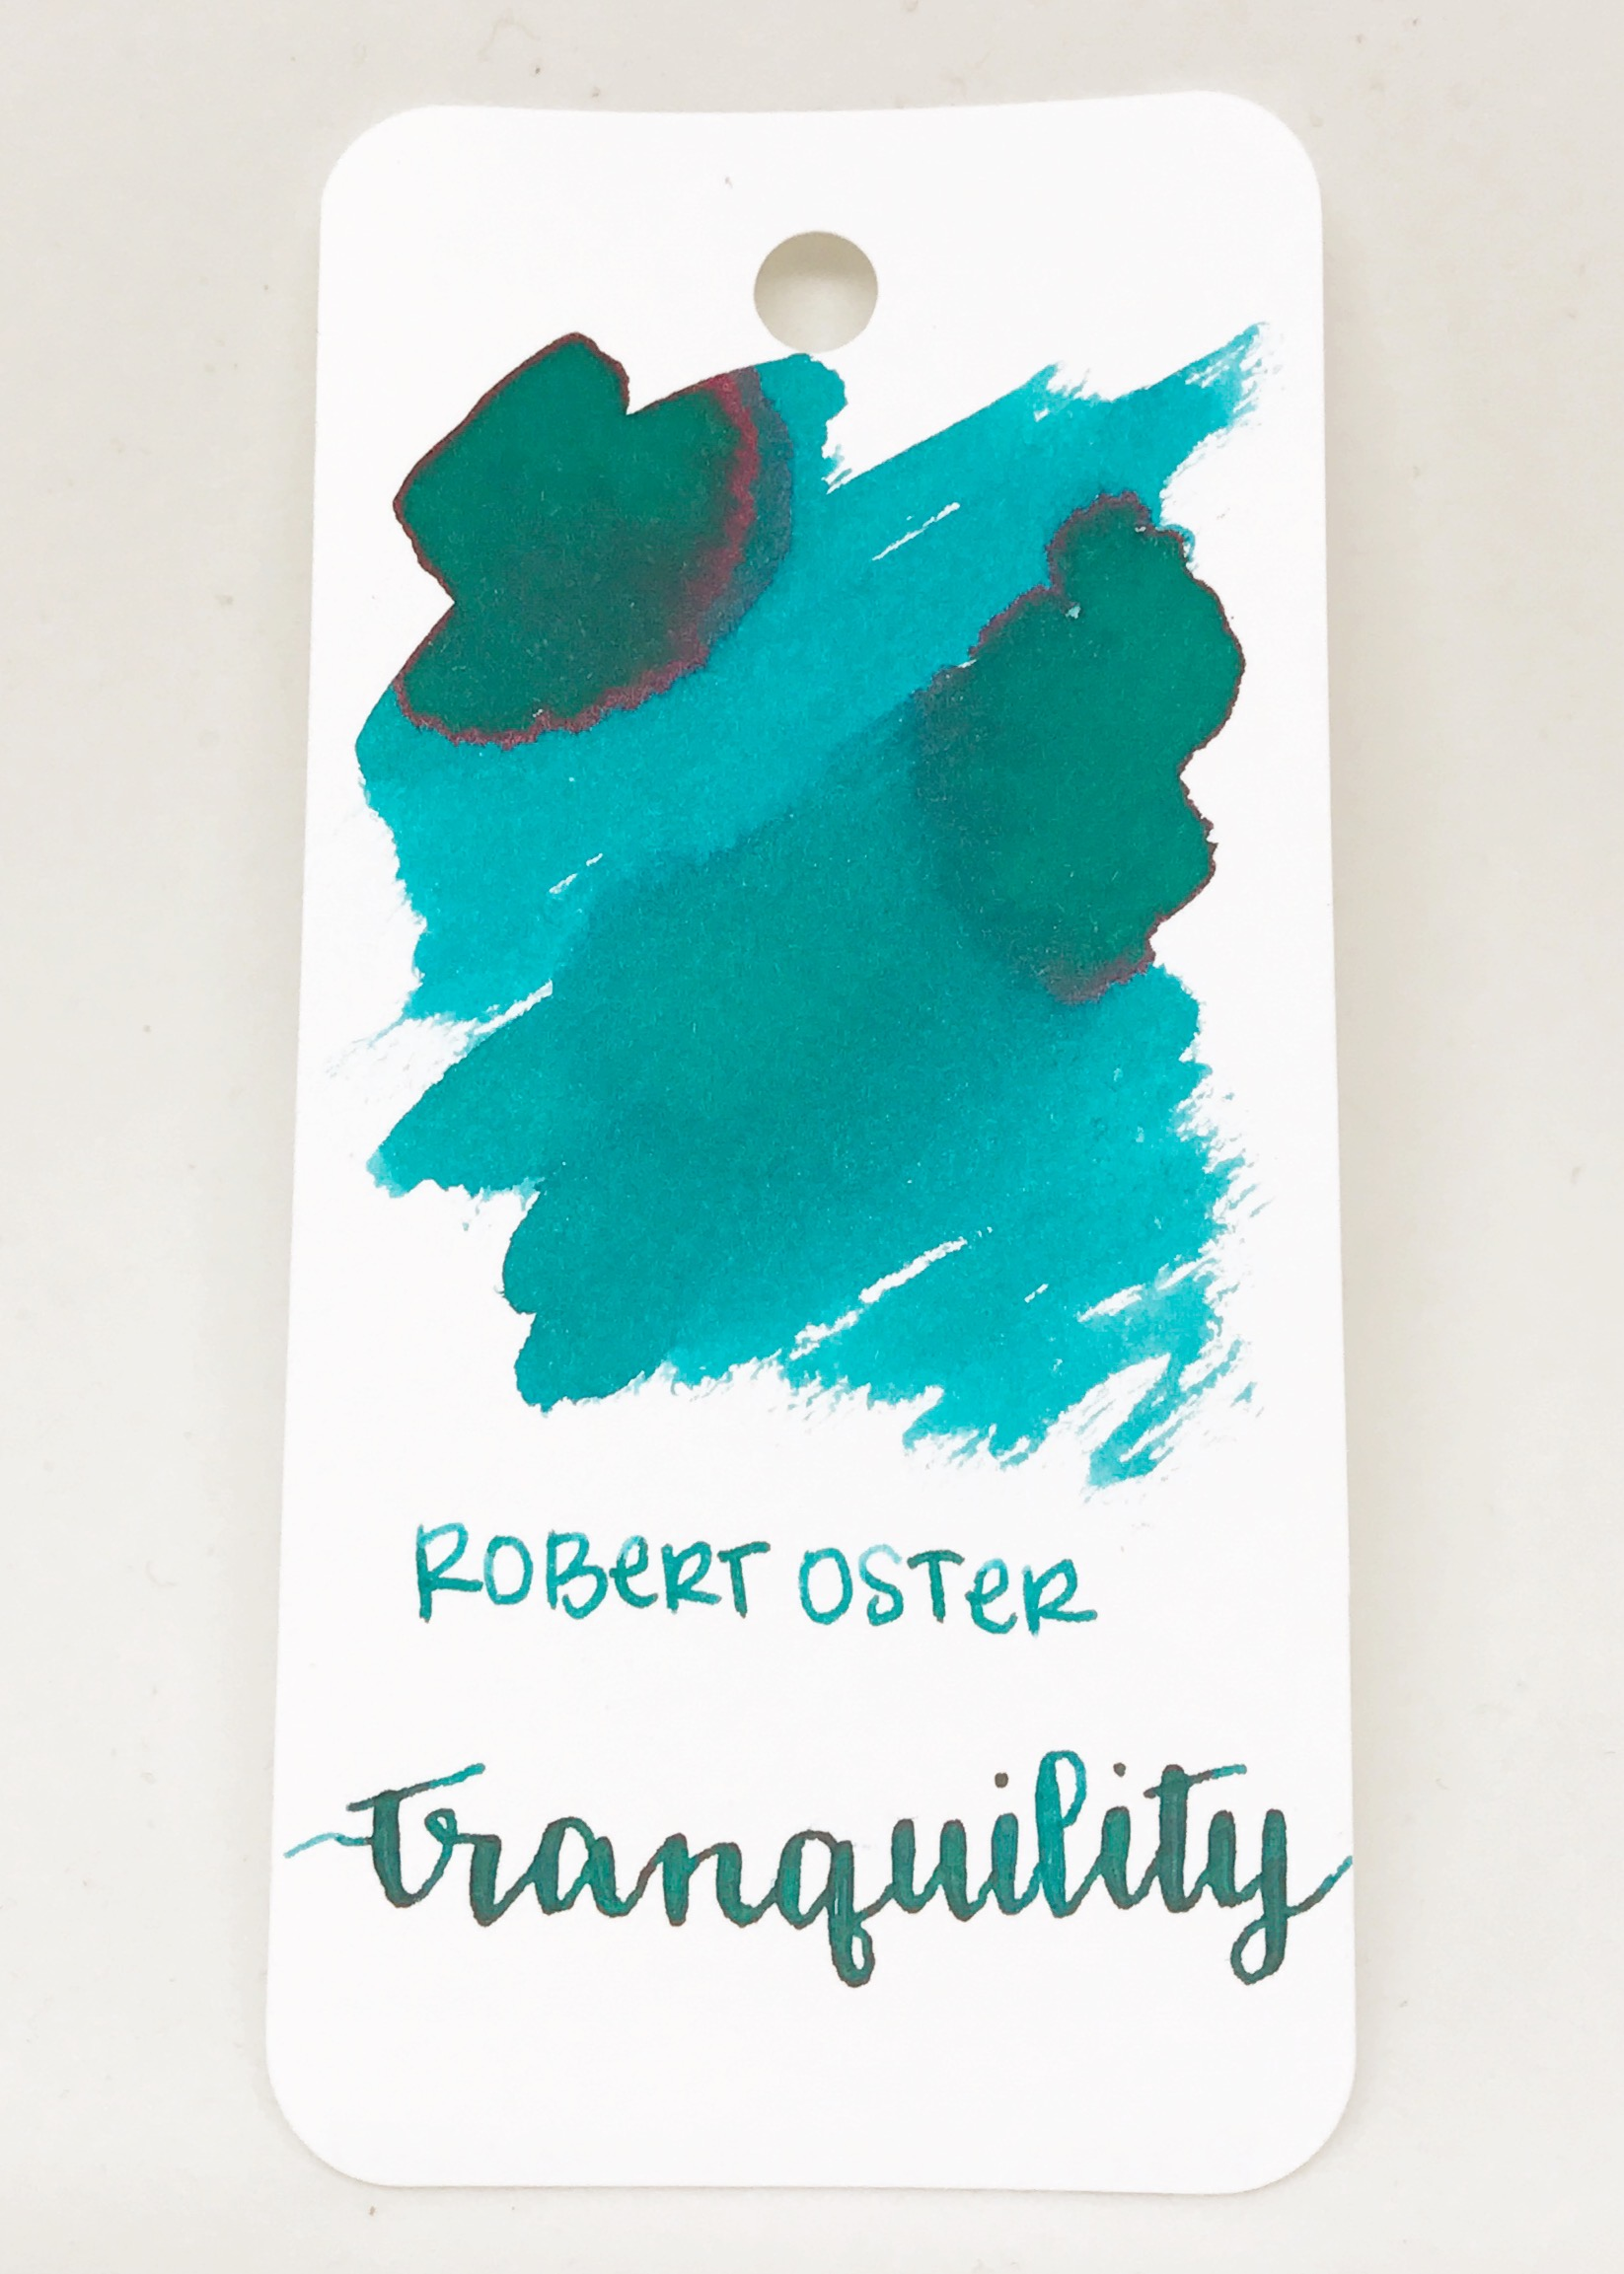 The color: - Tranquility is an amazing teal, with a pink sheen. On some papers it looks more blue, and others it looks more green. Seasonally, I would use this in the winter. On the swab, it looks a lot brighter than it does in everyday writing.